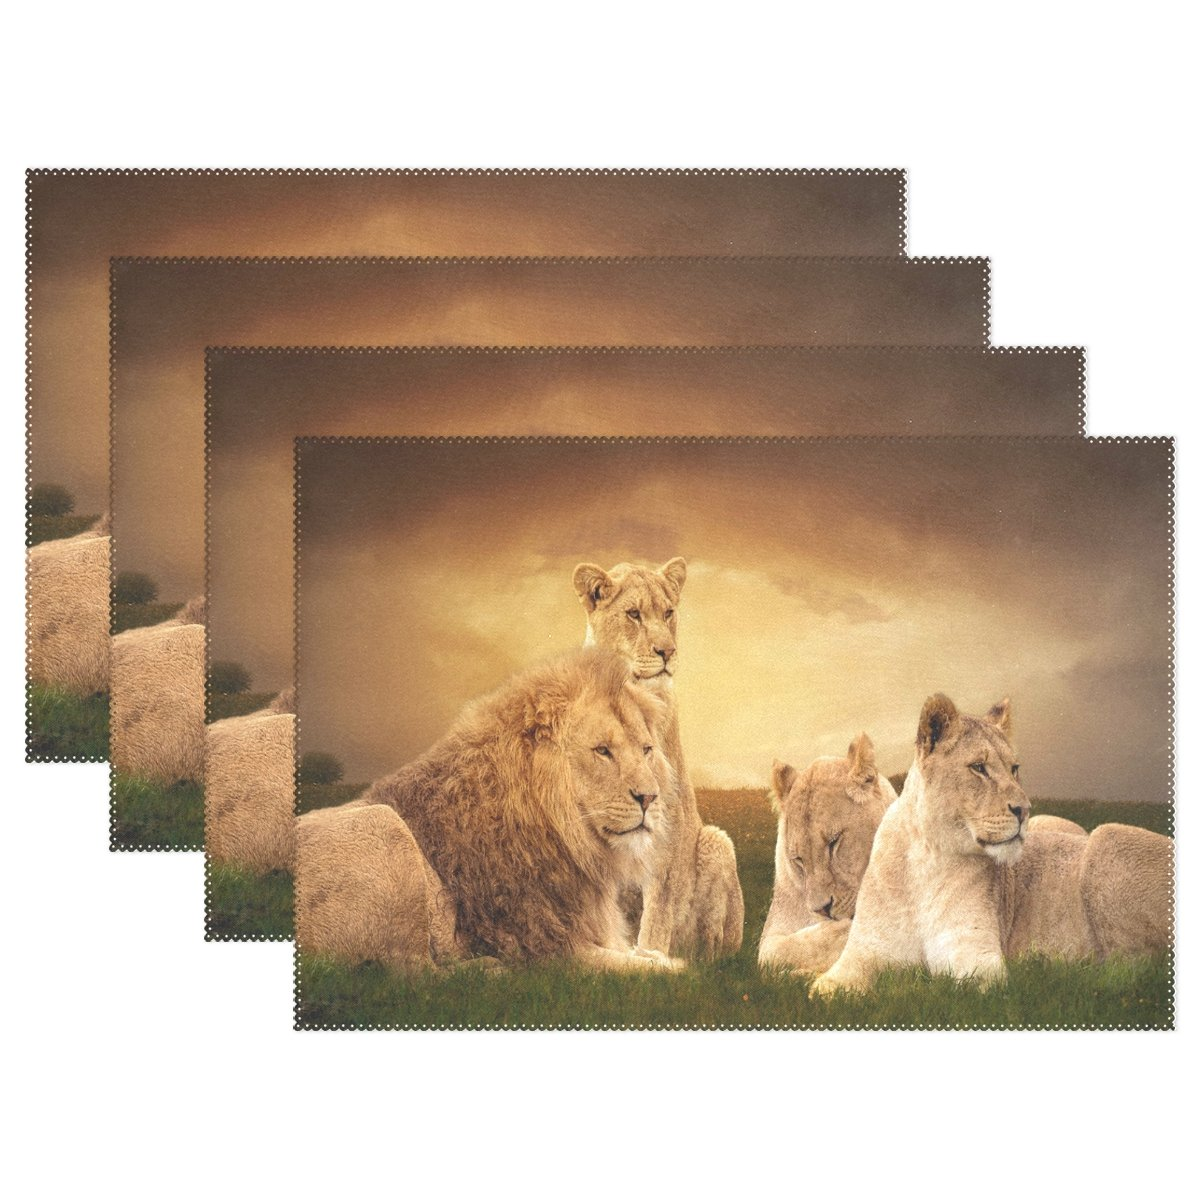 WOZO Animal African Lion Placemat Table Mat, Landscape Sunset 12'' x 18'' Polyester Table Place Mat for Kitchen Dining Room Set of 6 for Kids